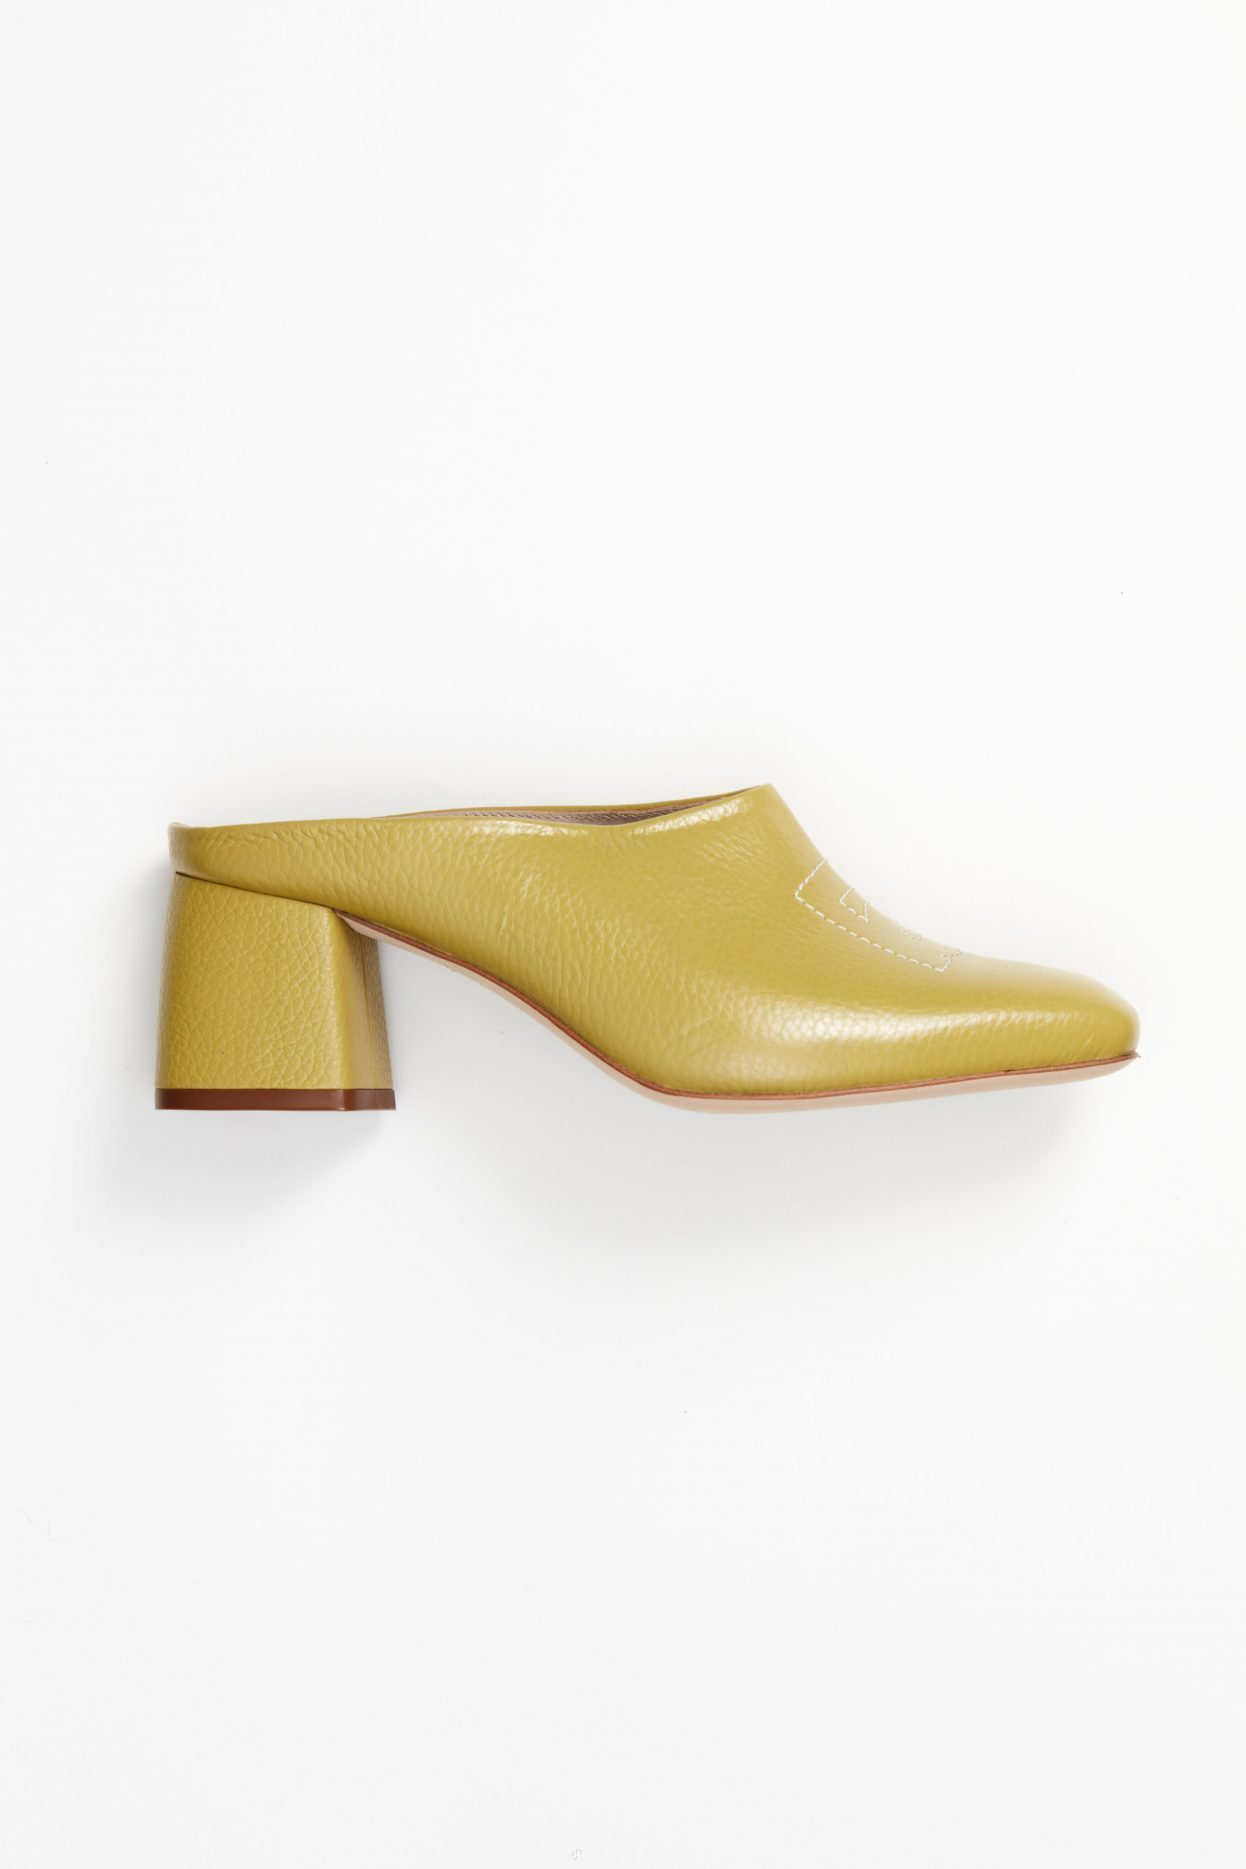 shop amelie pichard shoes